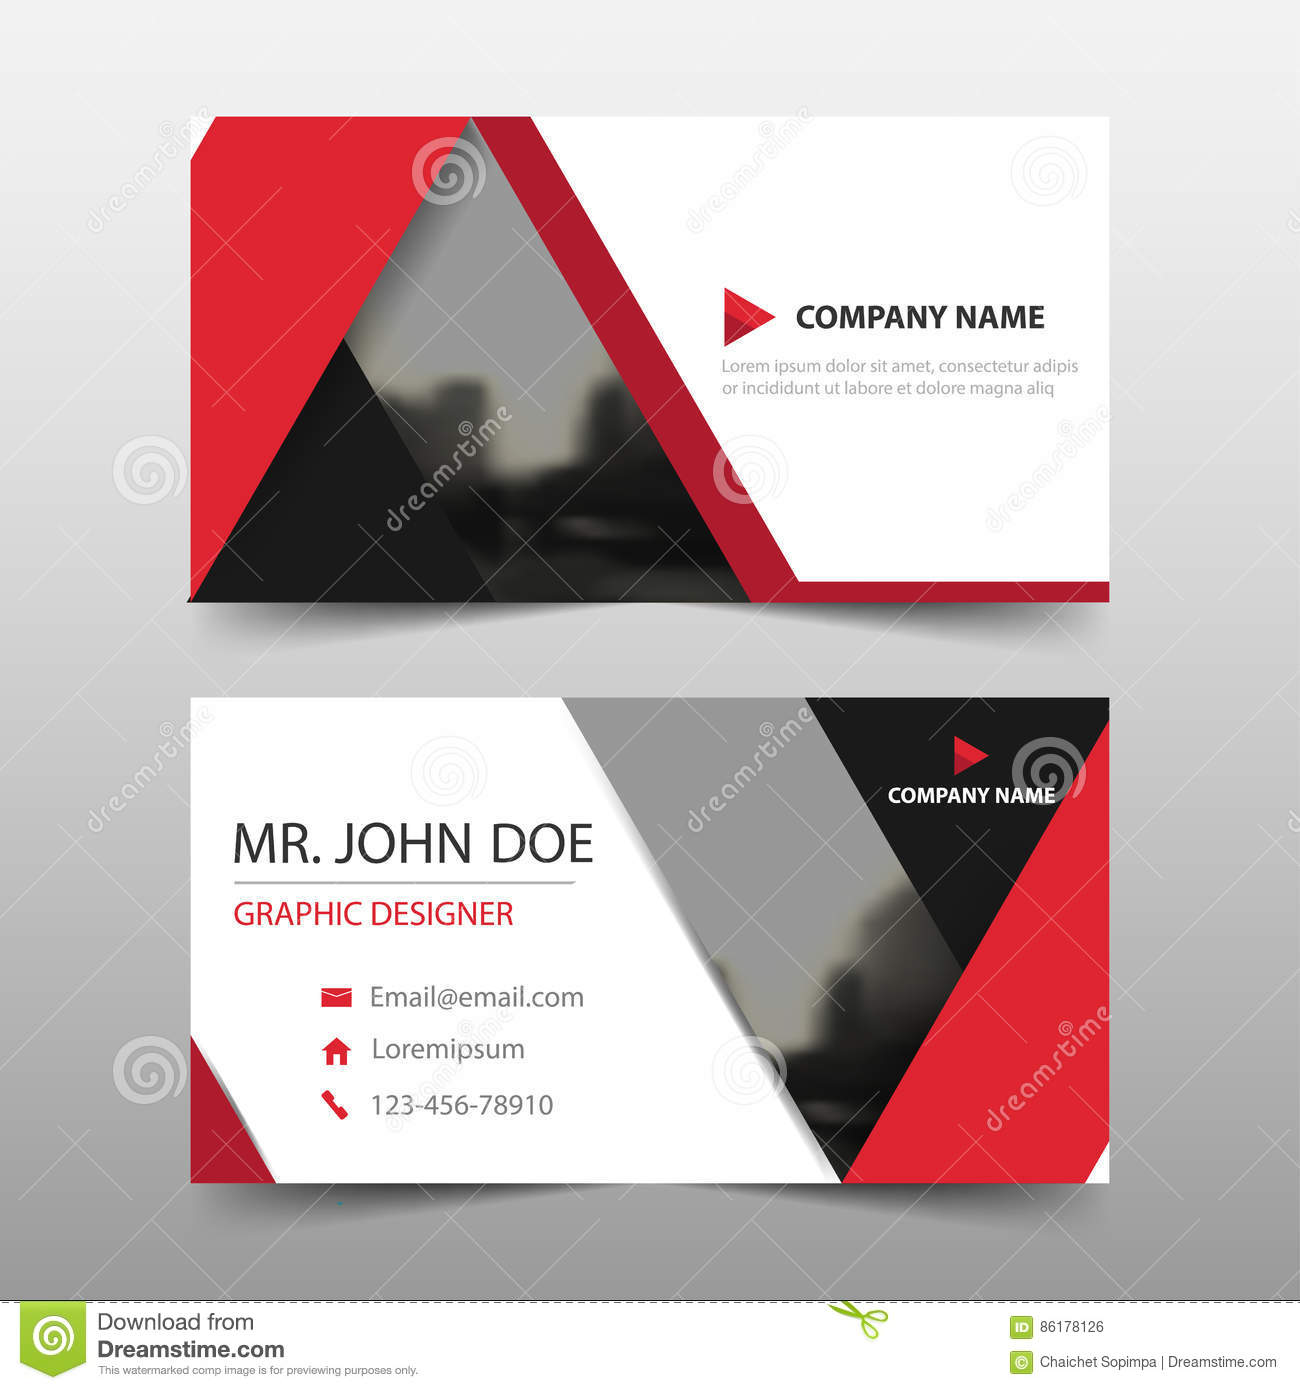 Red triangle corporate business card name card template horizontal red triangle corporate business card name card template horizontal simple clean layout design template fbccfo Gallery